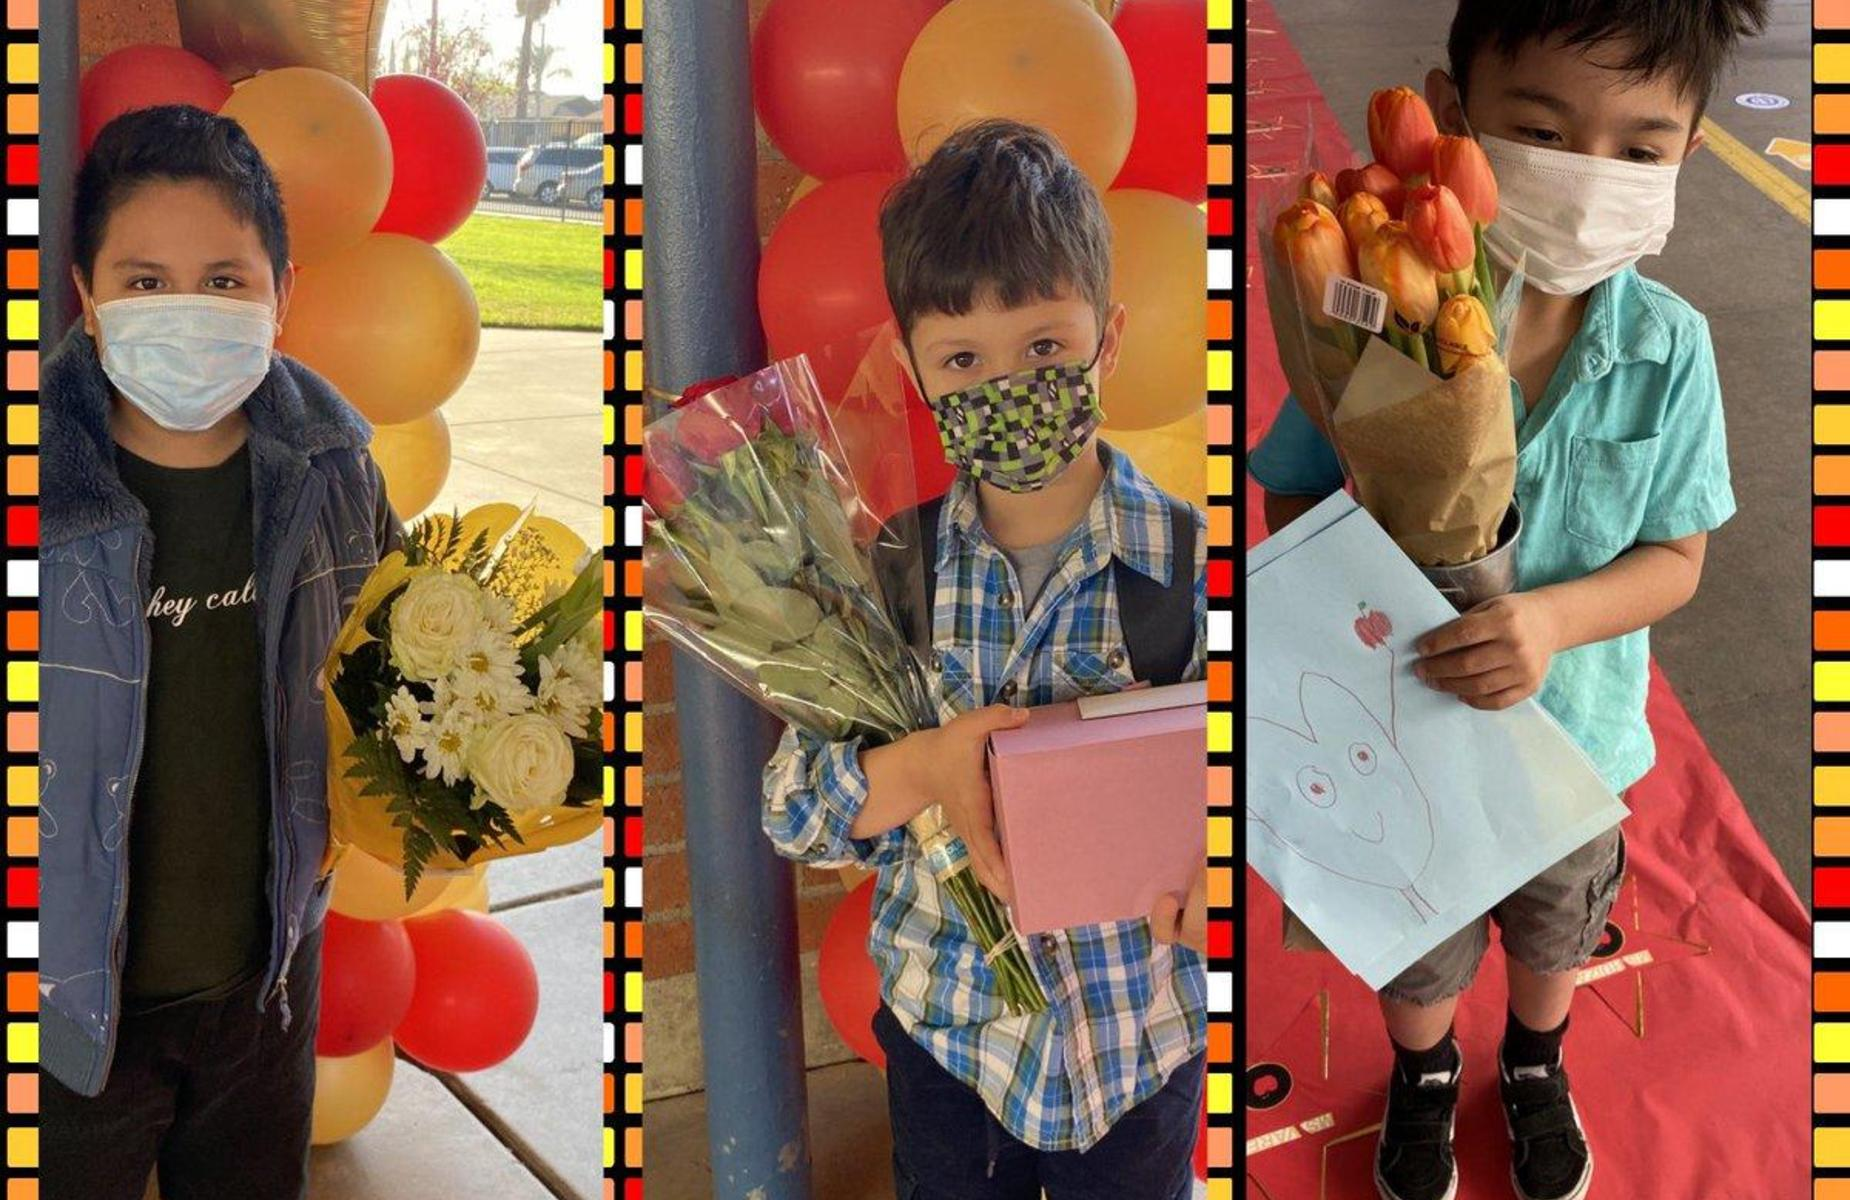 Arroyo #Panthers showing  their appreciation by bringing flowers! Their excitement and appreciation brought joy to their teachers. #proud2bepusd  @ArroyoPUSD  #TeacherAppreciationWeek